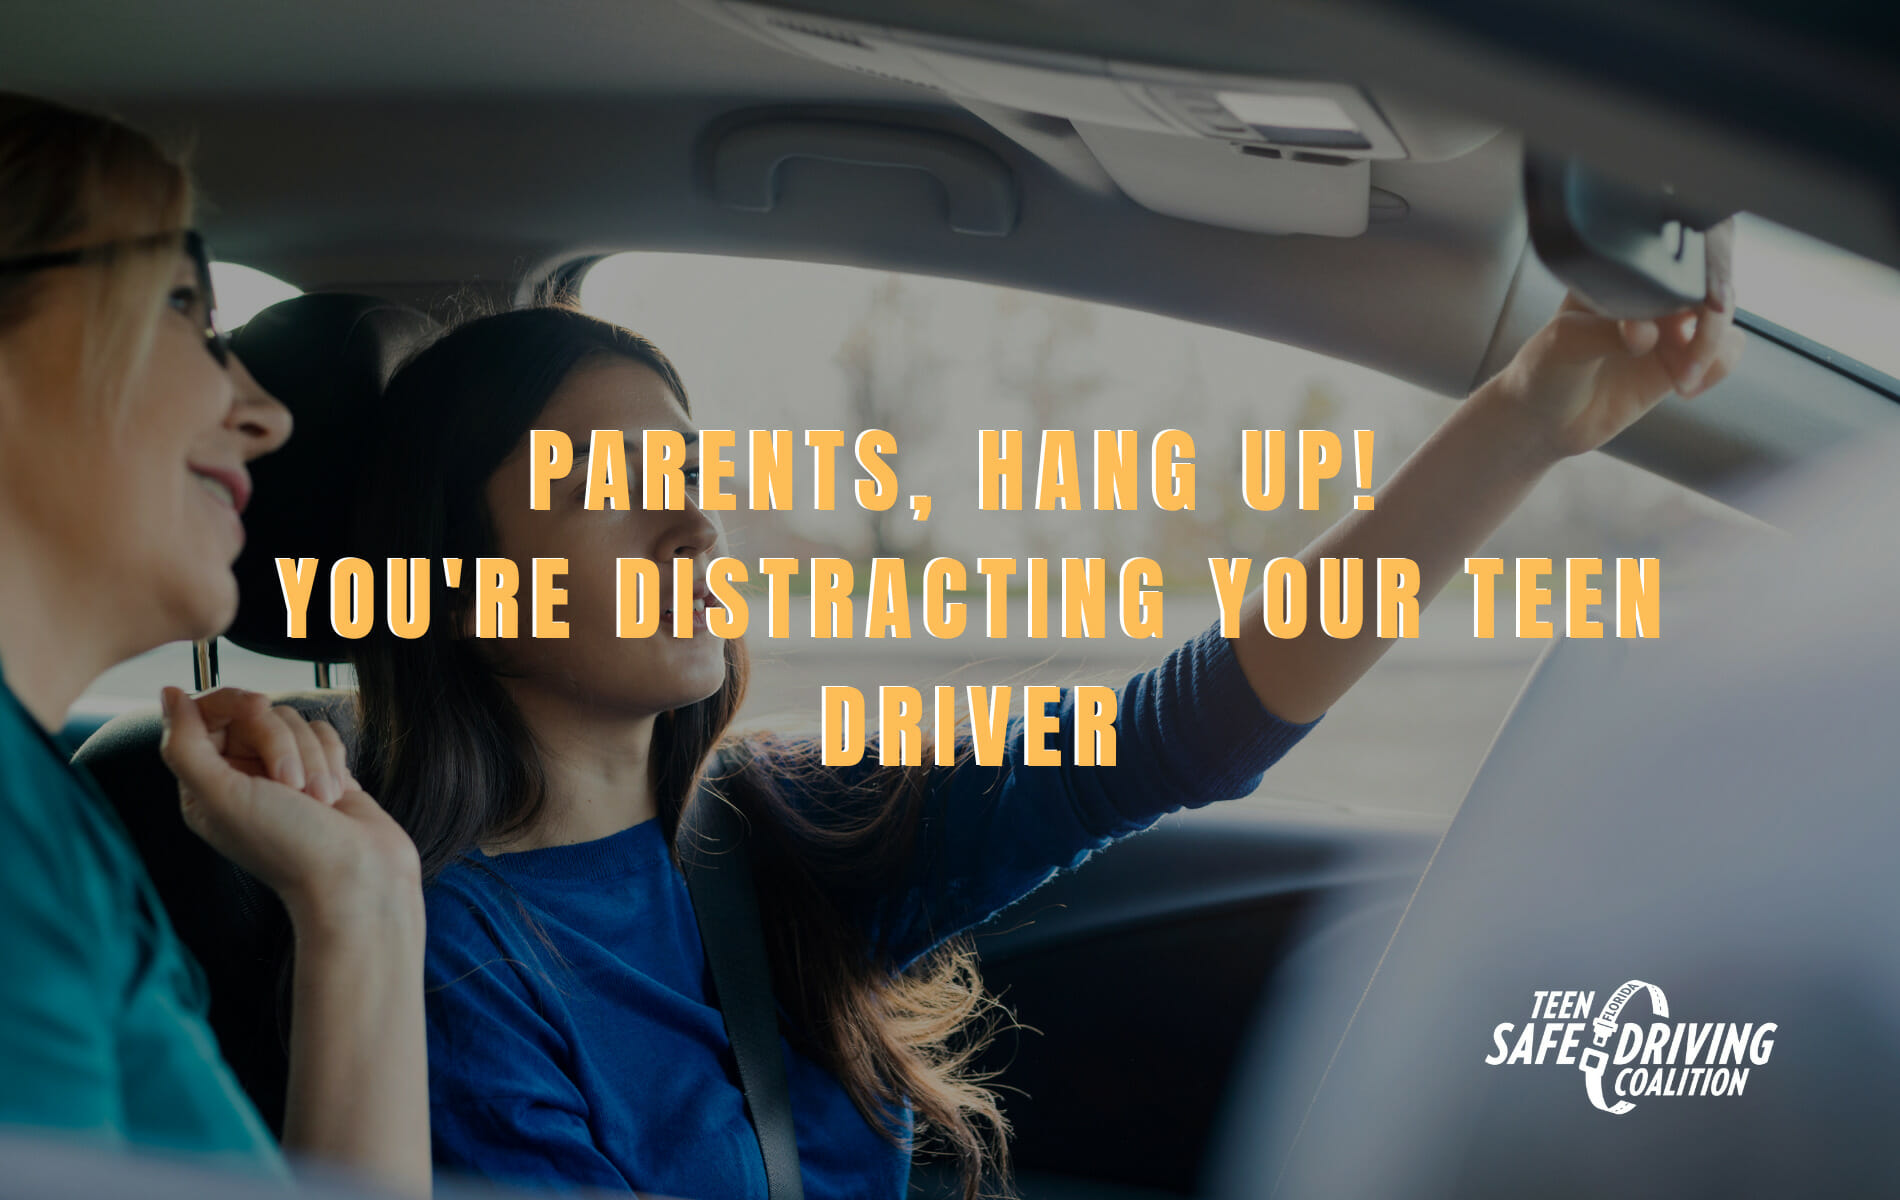 Parents, hang up! You're distracting your teen driver